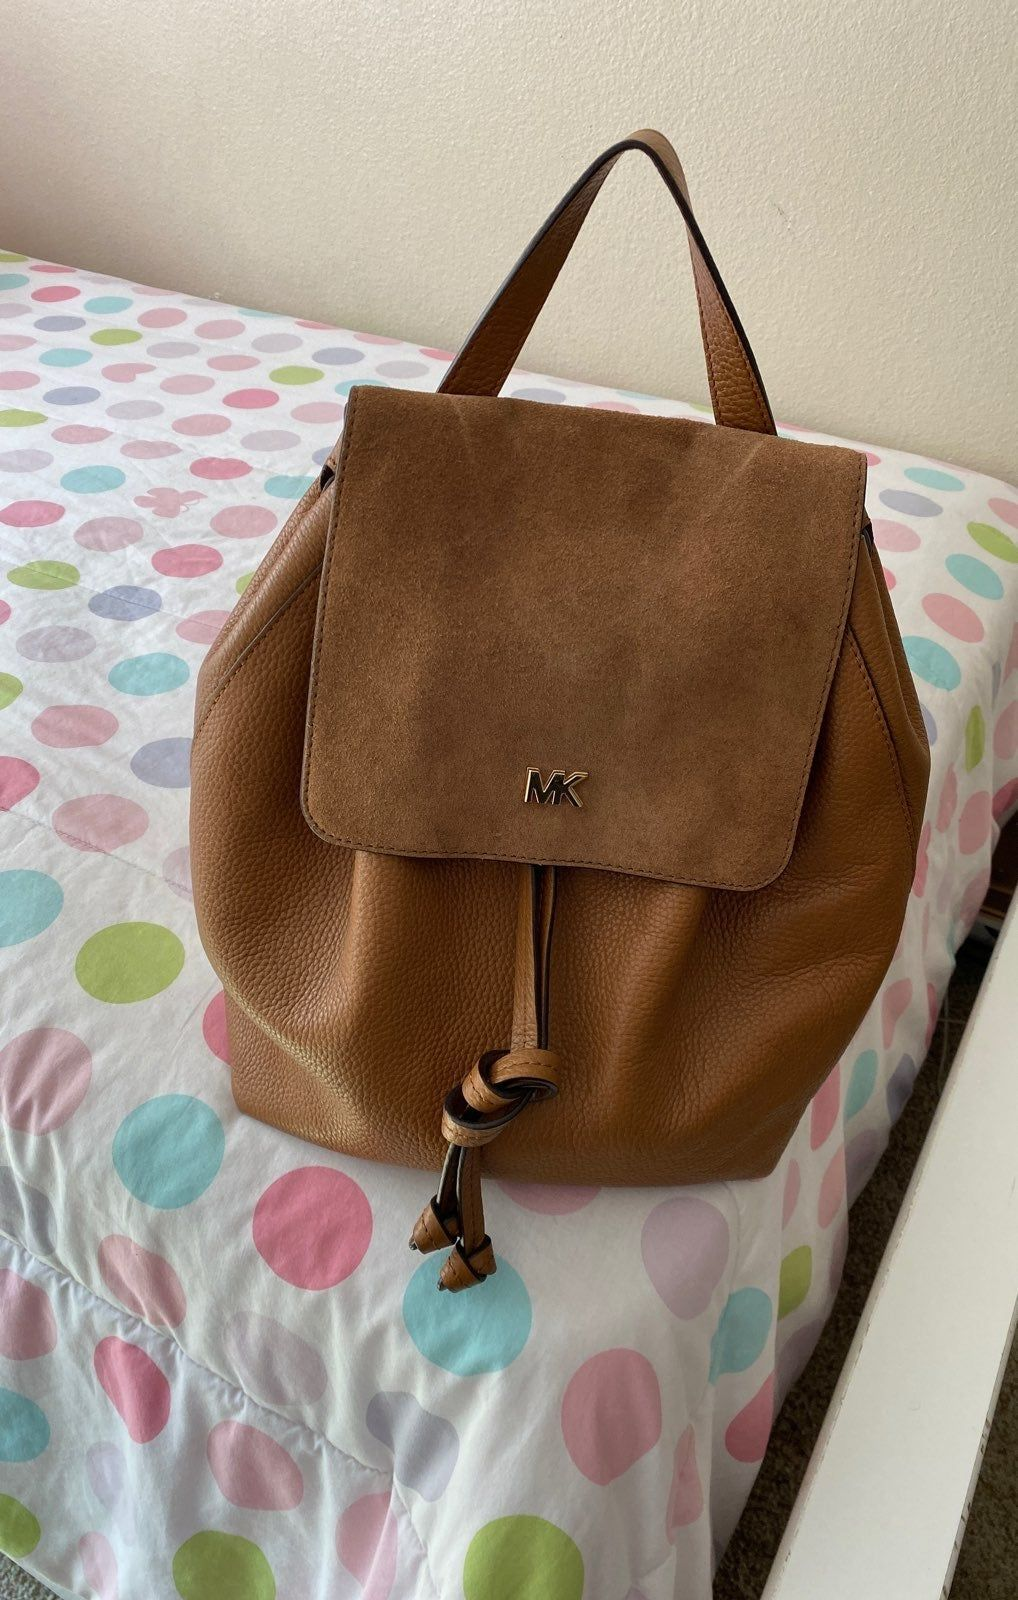 Used 1 Time Mk Backpack I M Great Condition Michael Kors Backpack Backpacks Leather Backpack